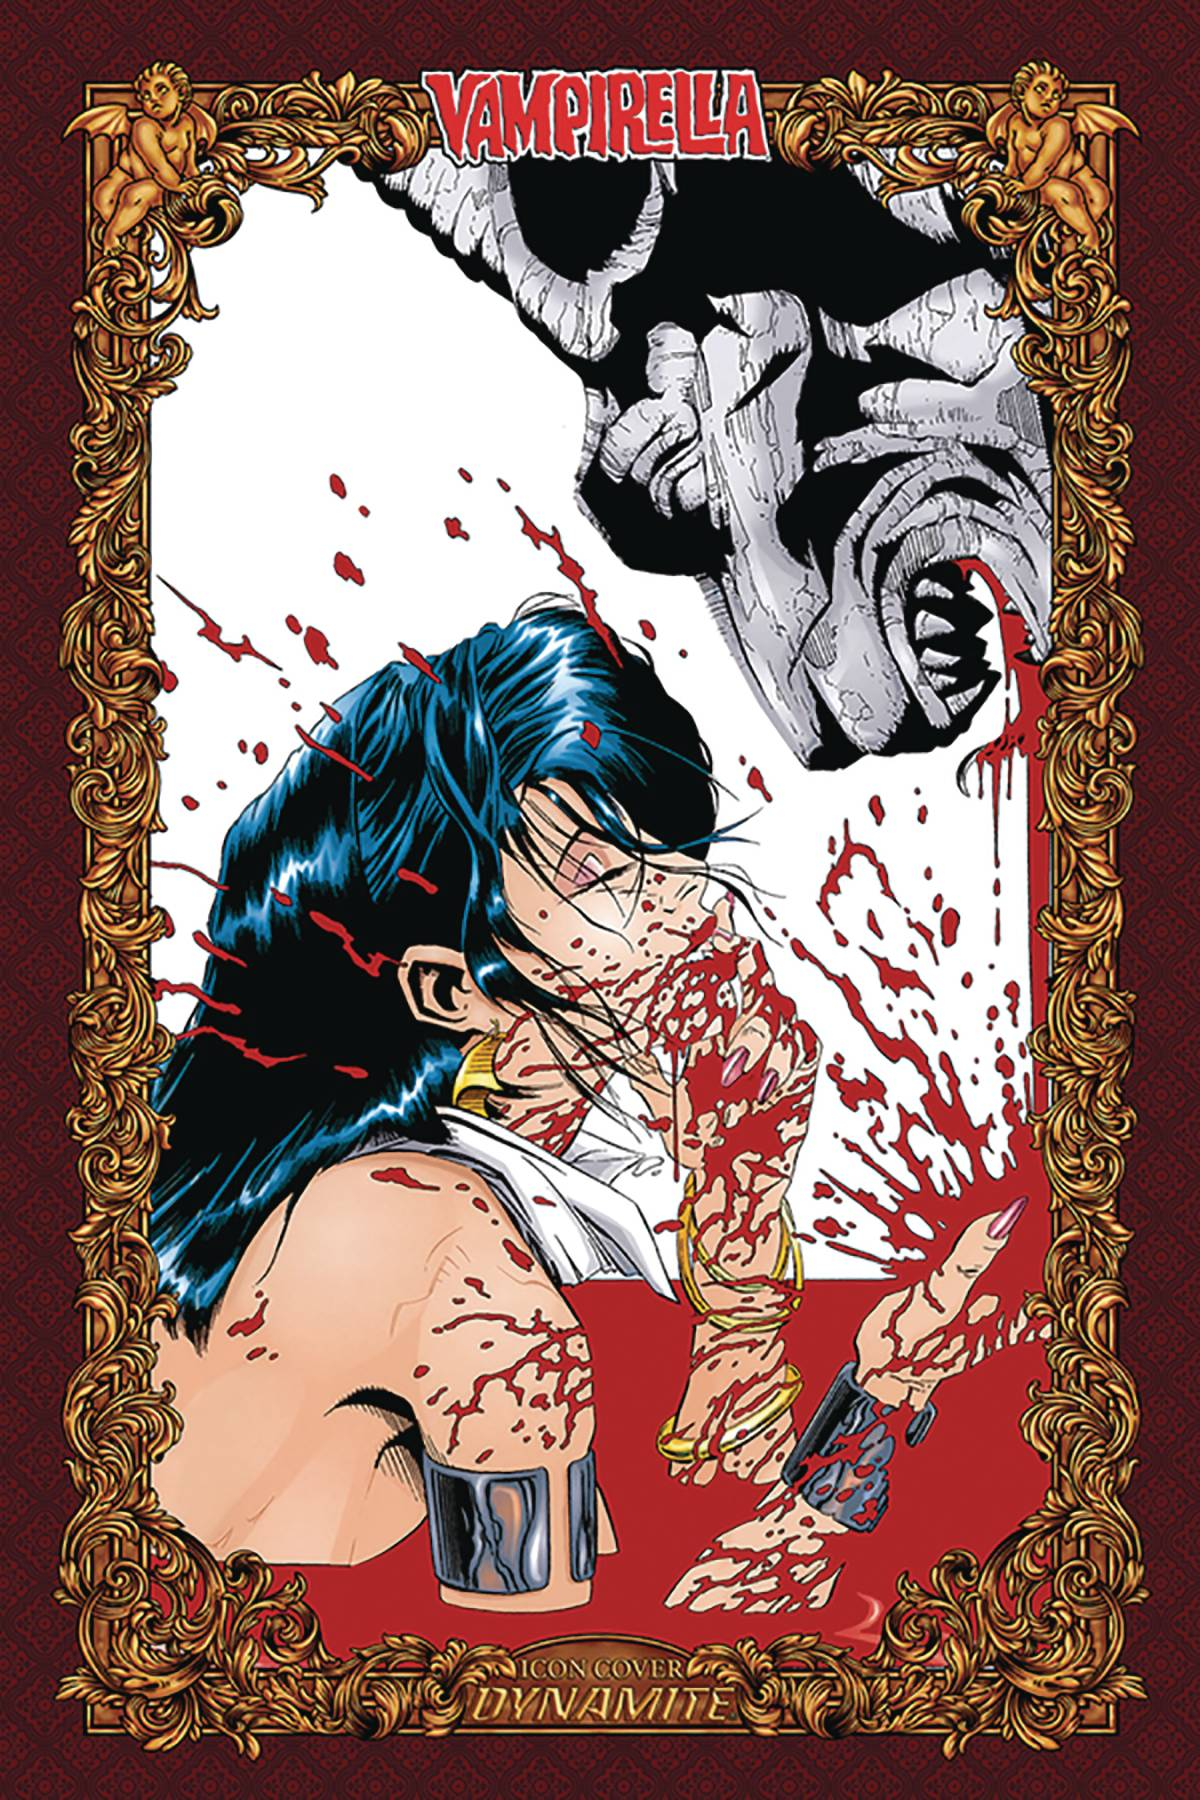 VENGEANCE OF VAMPIRELLA 1 100 COPY QUESADA ICON INCV.jpg